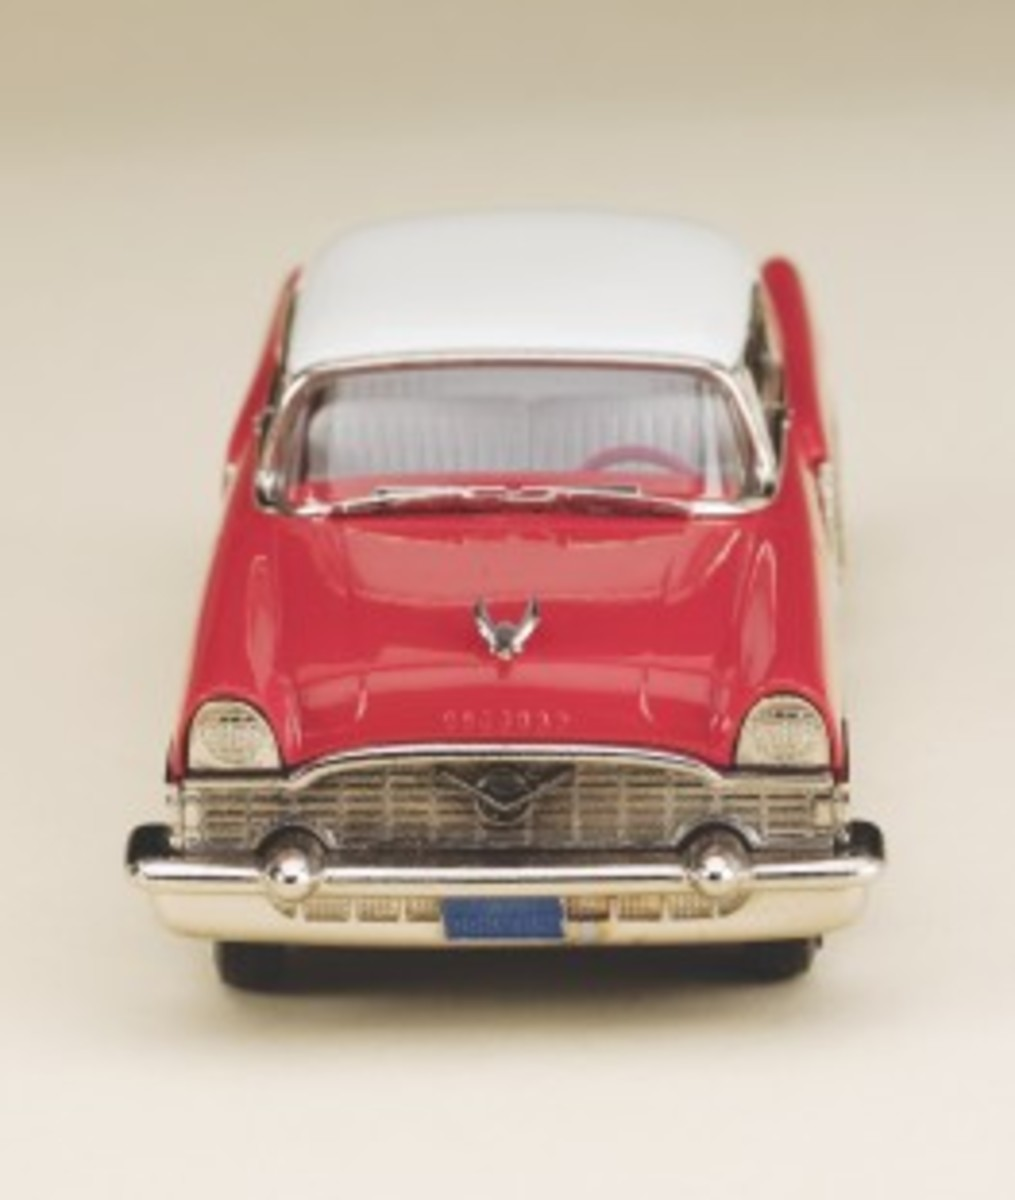 Grille view of the new 1955 Packard 400 Hardtop model in 1:43 scale by Brooklin Models.